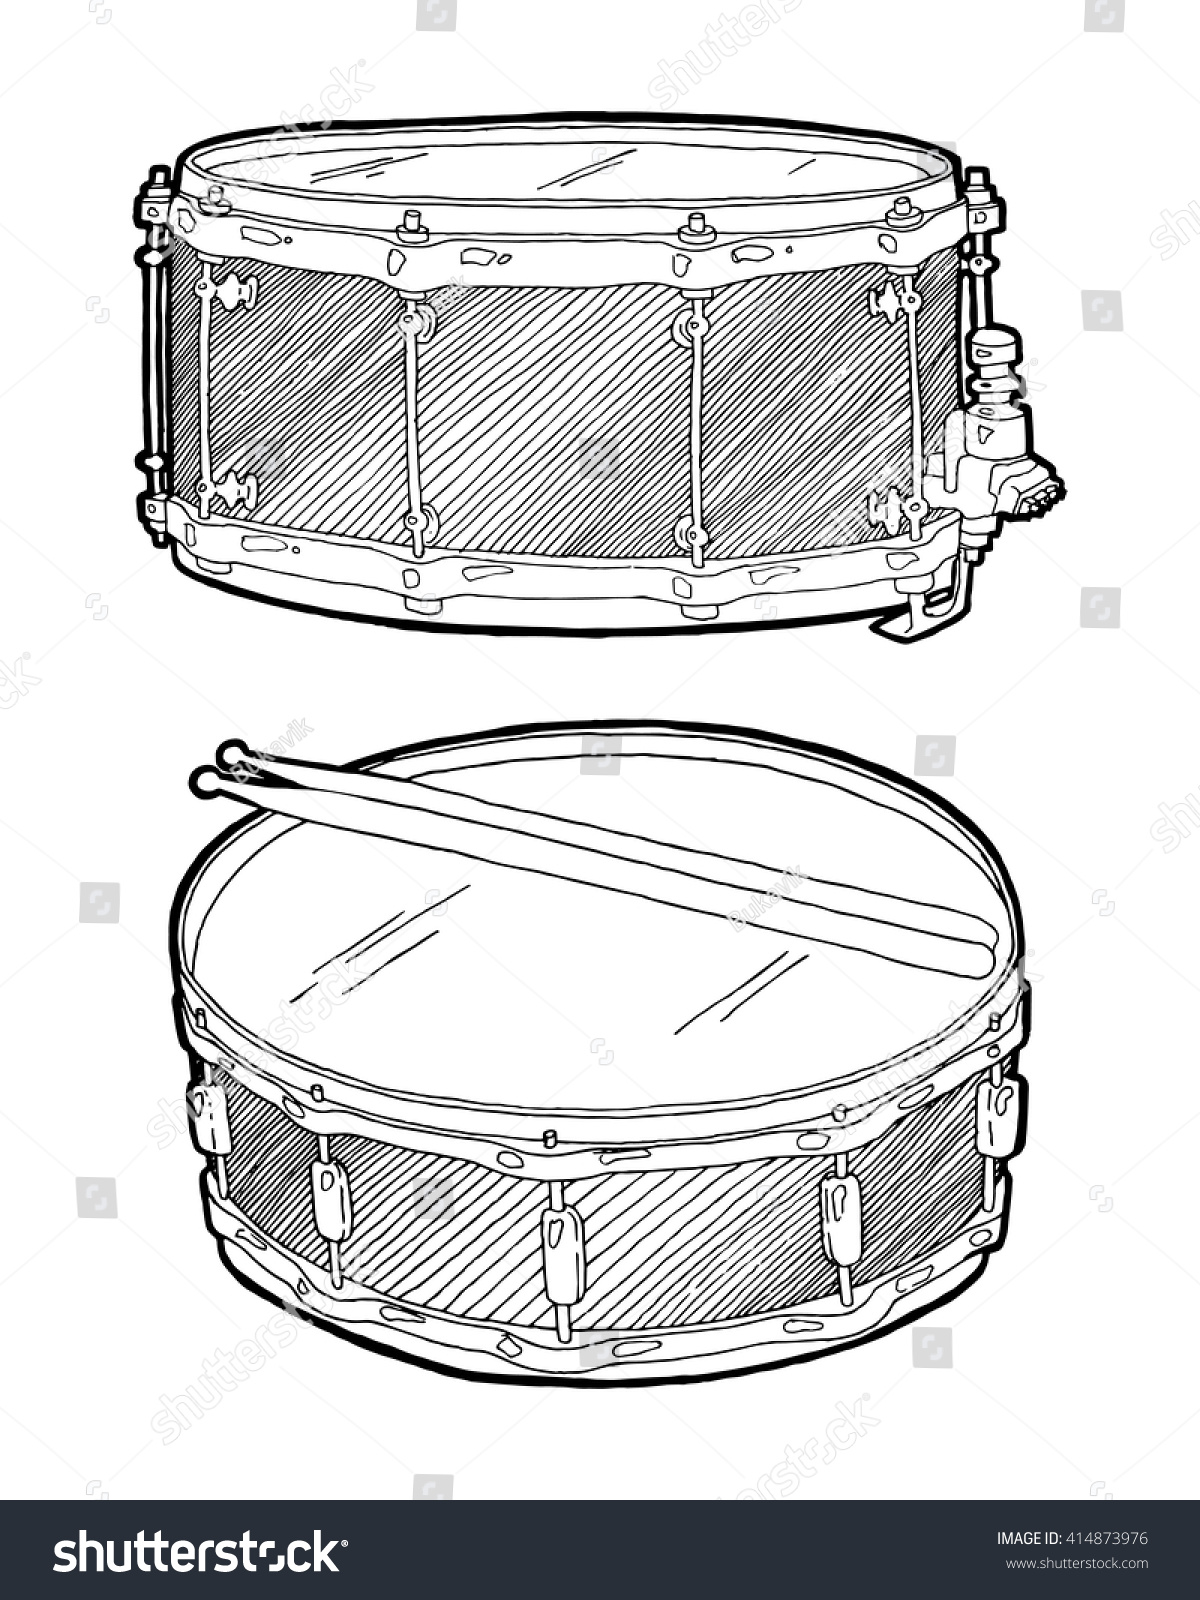 1200x1600 Collection Of Snare Drum Drawing High Quality, Free Cliparts